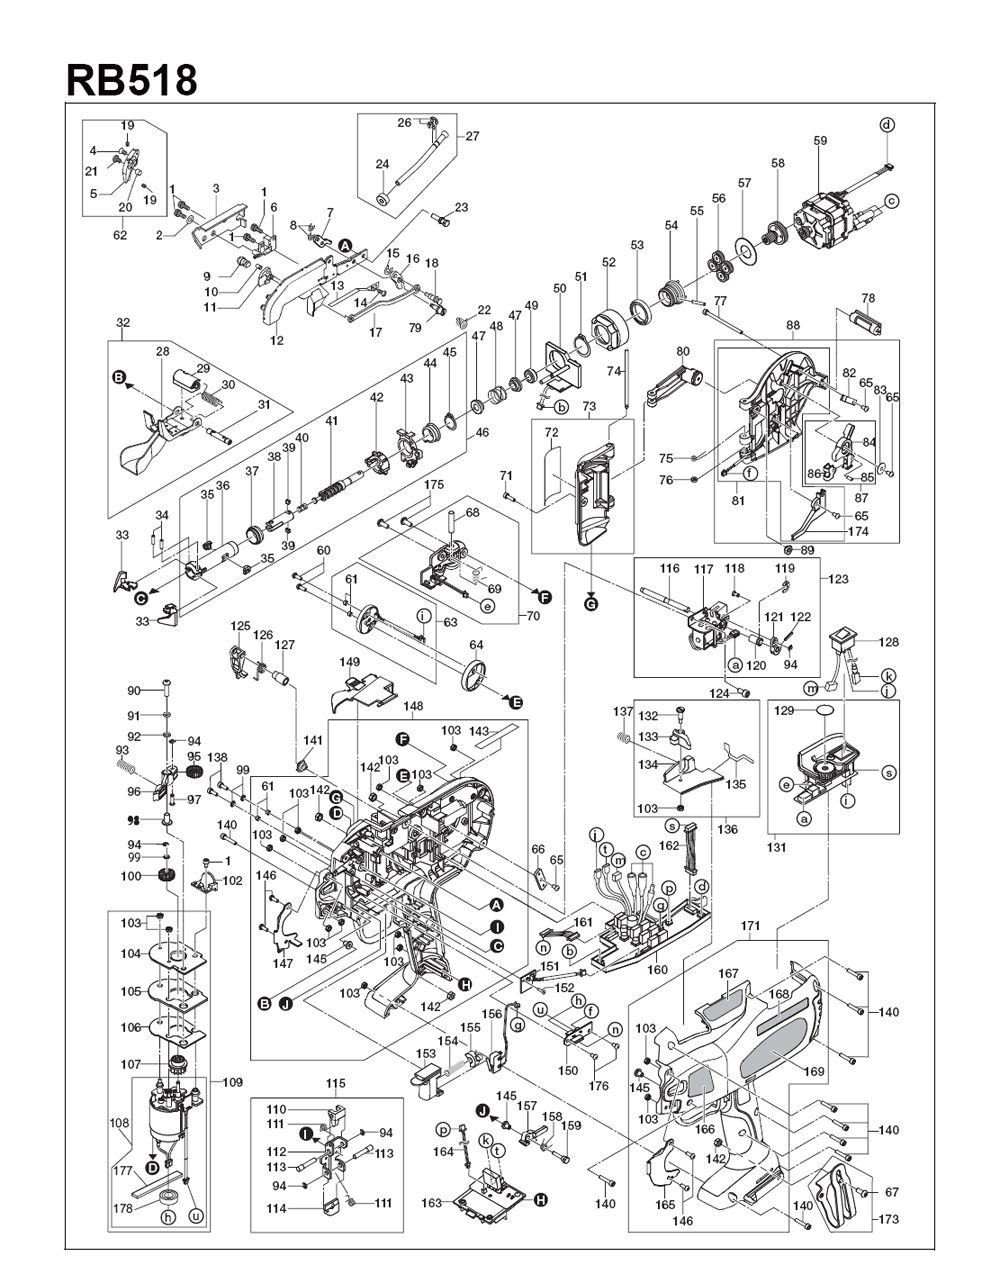 Buy Max Rb518 Replacement Tool Parts A Href Ryobi Ry29550 List And Diagram Ereplacementpartscom Schematic